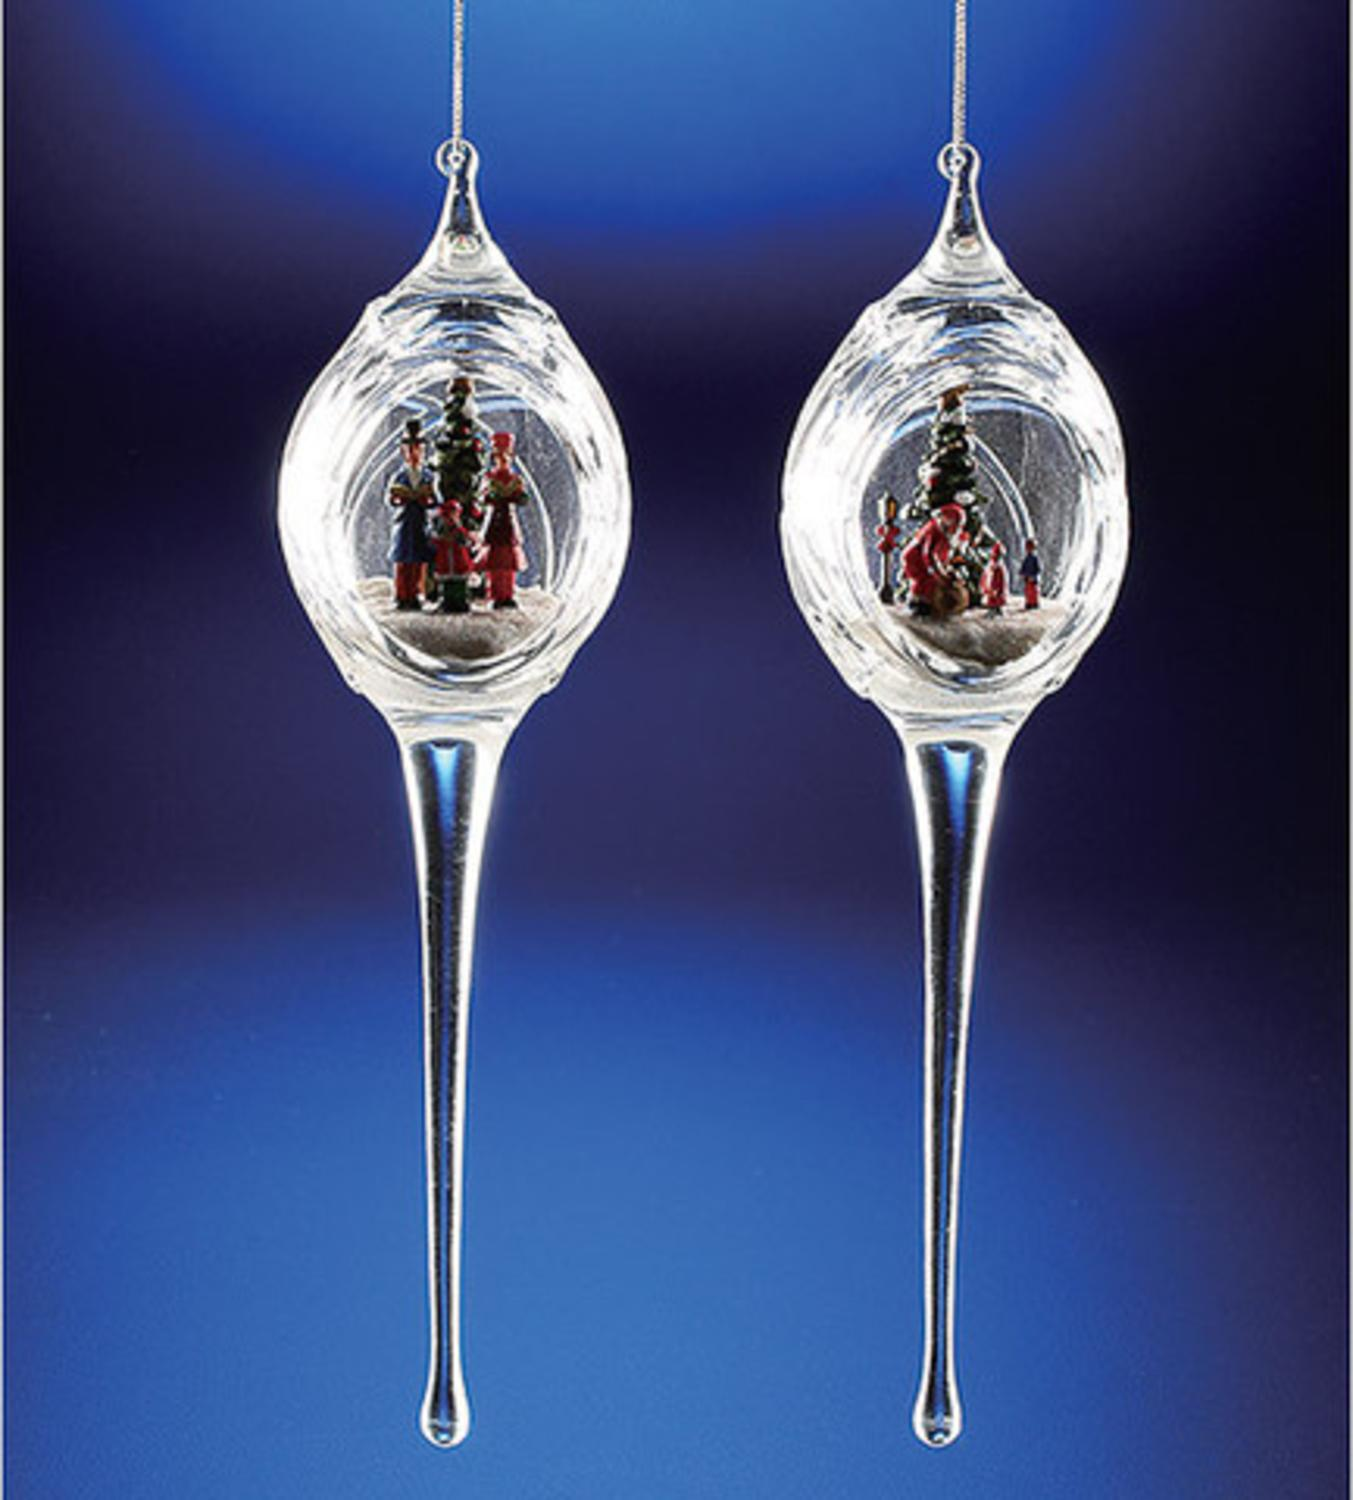 Pack of 6 Icy Crystal Egg-Shaped Christmas Scene Ornaments with Icicles 9.3""